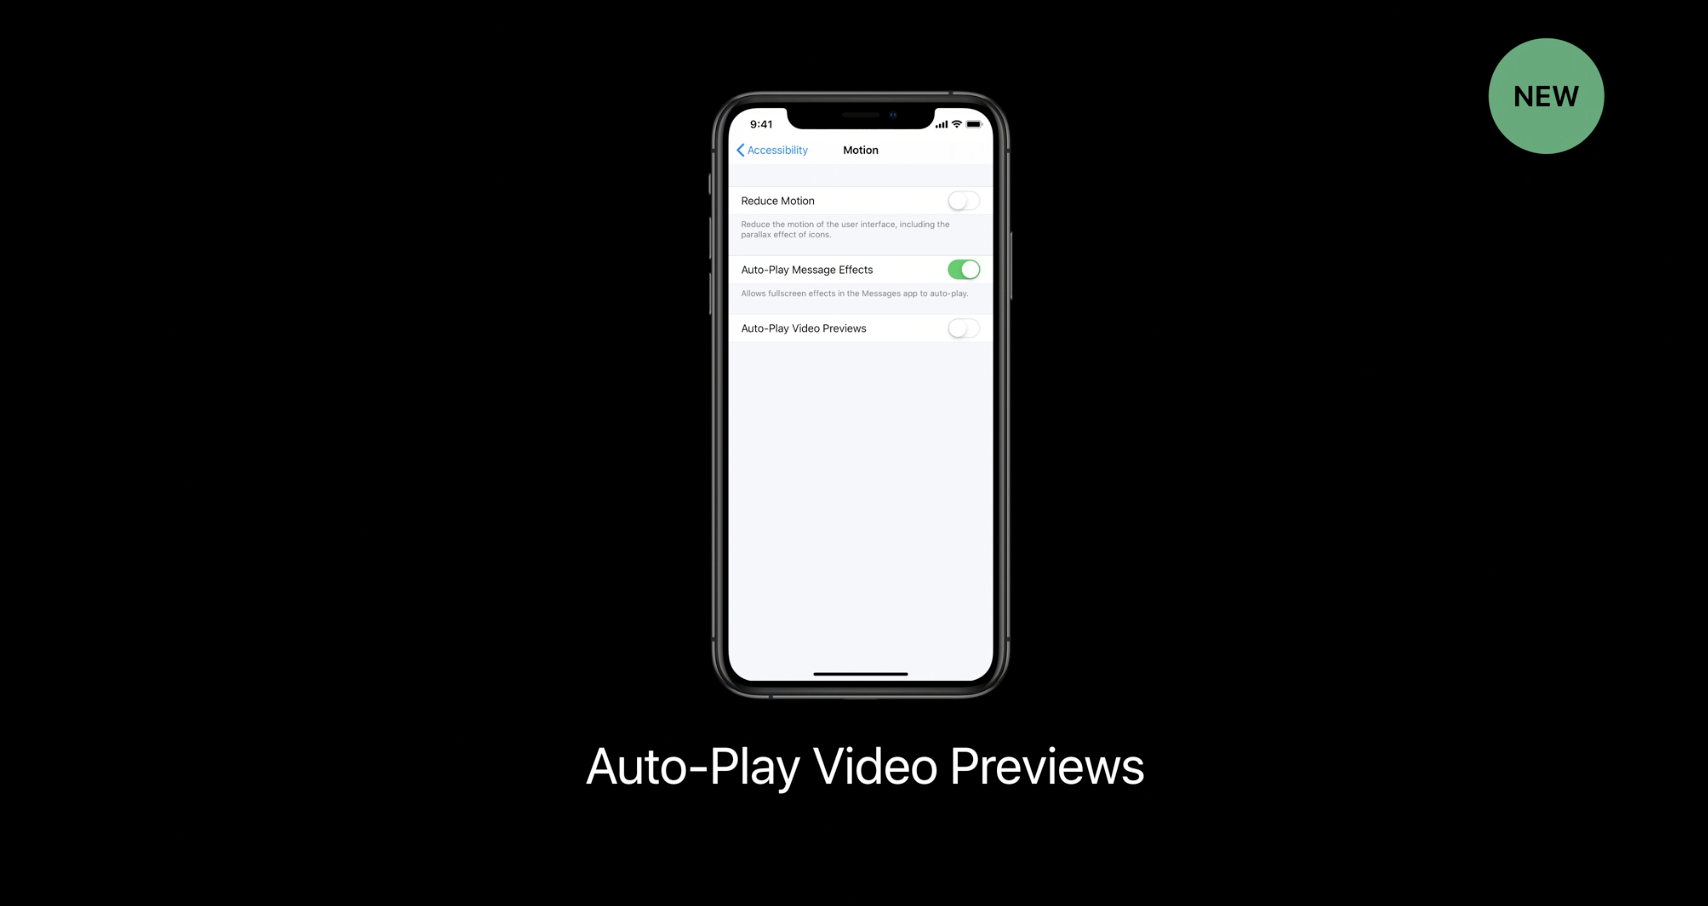 iOS 13 includes new Accessibility features for motion